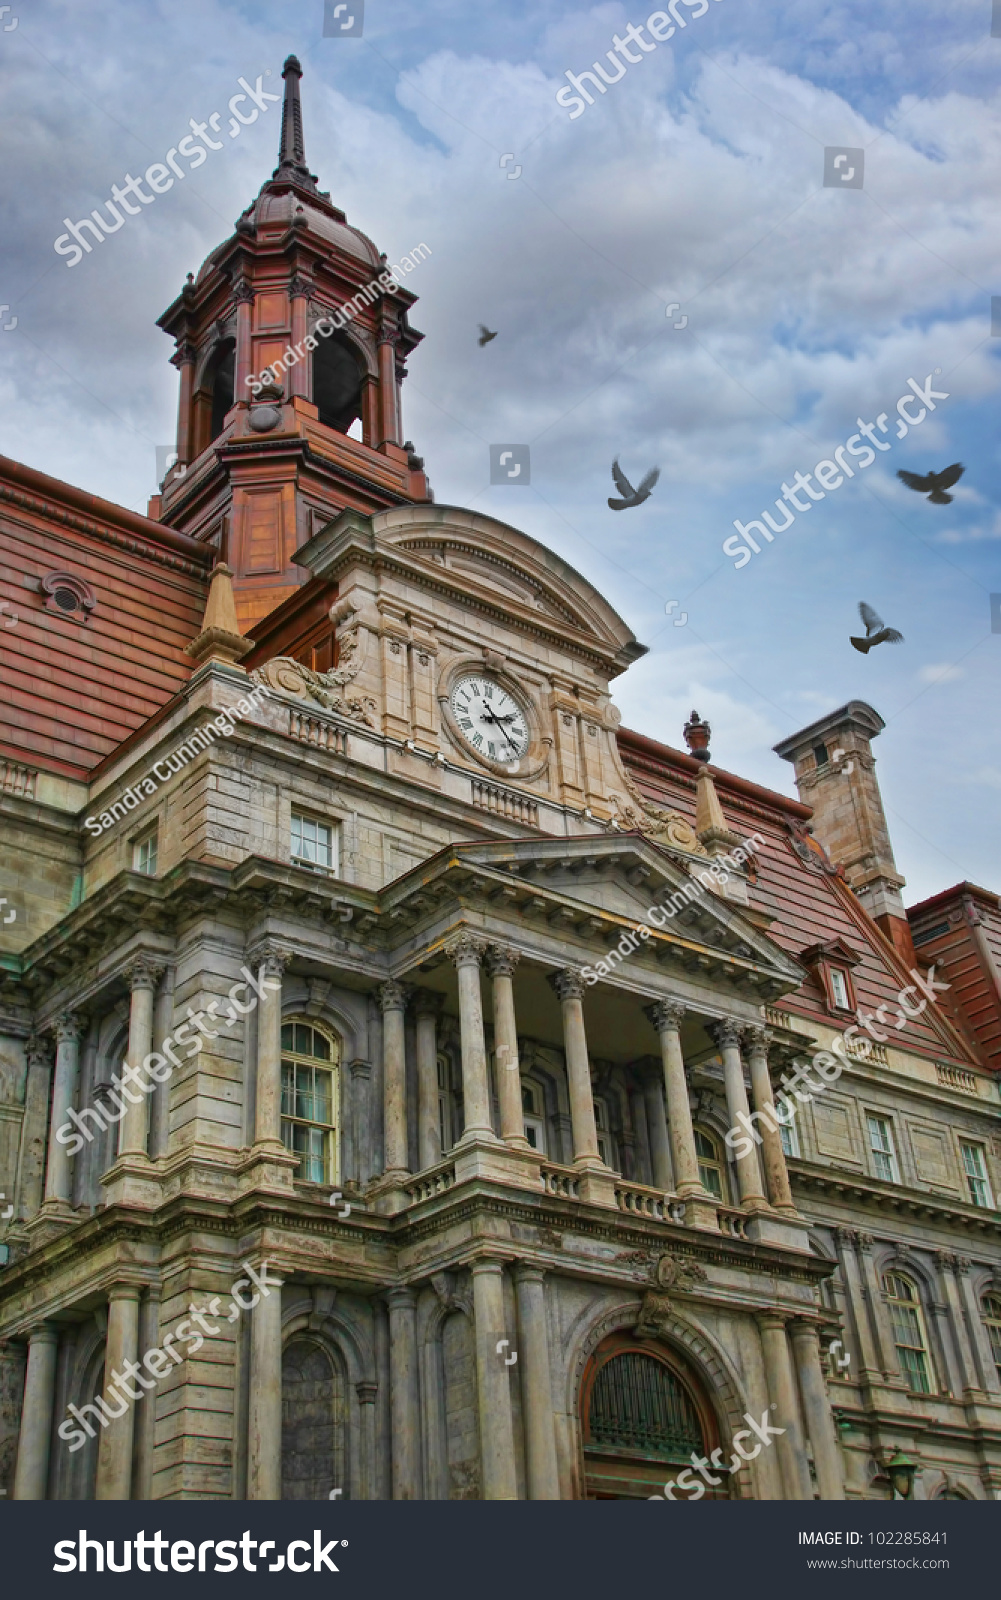 Ornate Detail Of An Old Building In Montreal Stock Photo ...